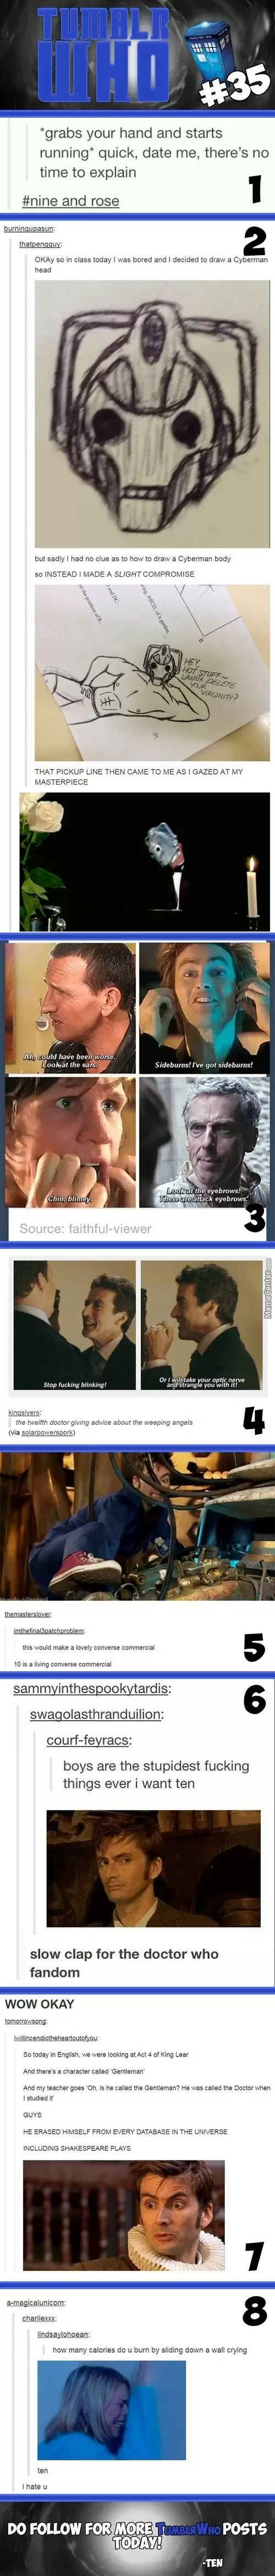 Welcome to the fandom of feels help the cause buy dotnating $1 towards killing our dictator Moffat plz enjoy your stay